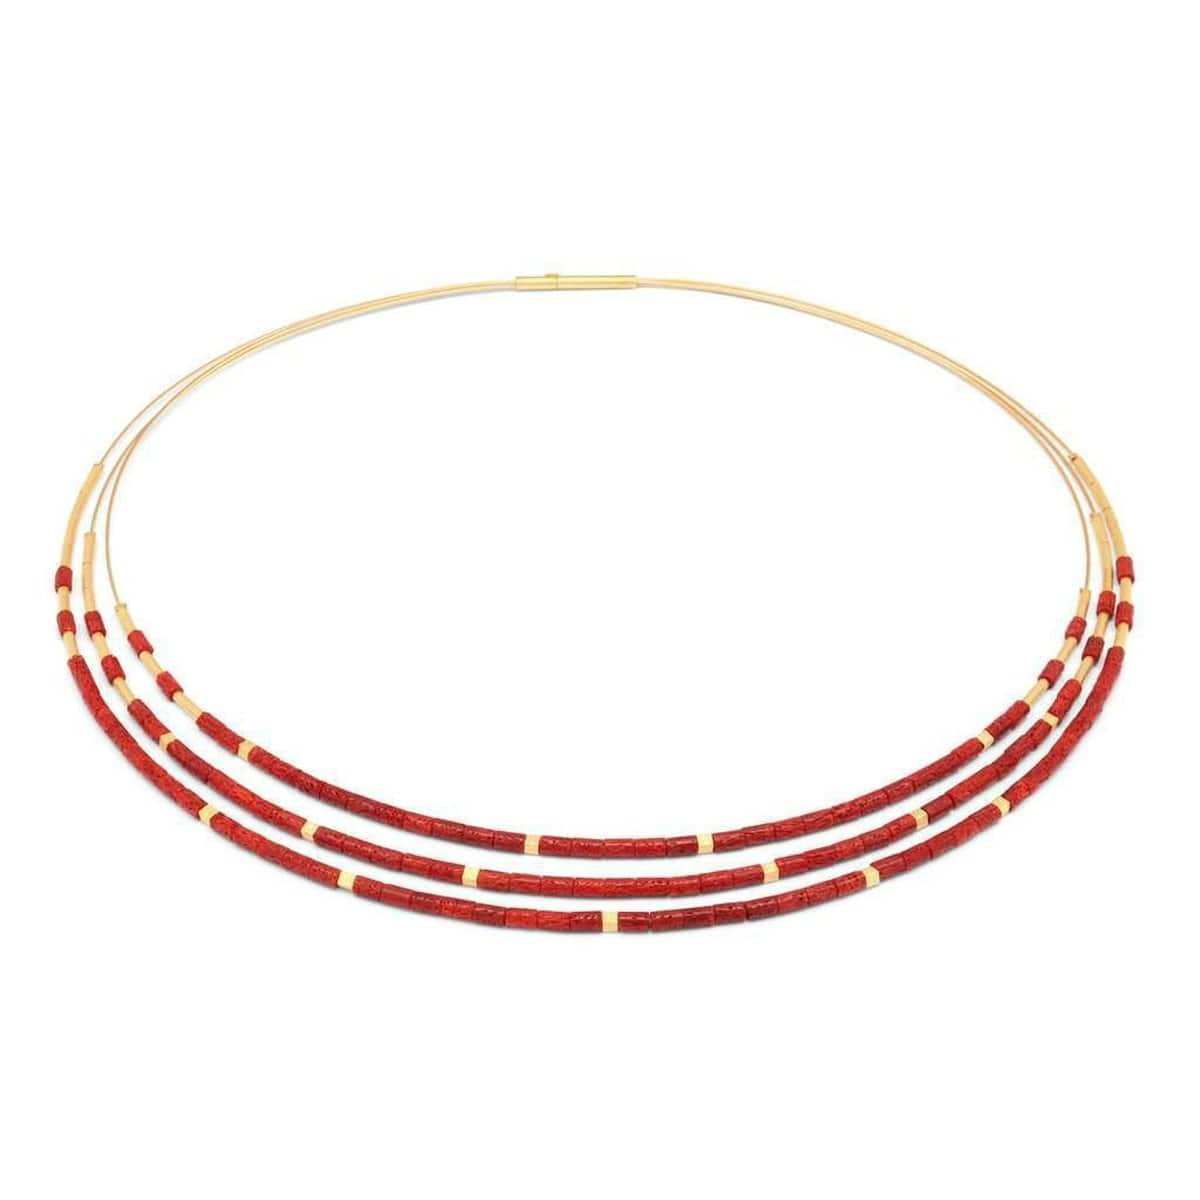 Cubaleni Red Coral Necklace - 83206296-Bernd Wolf-Renee Taylor Gallery